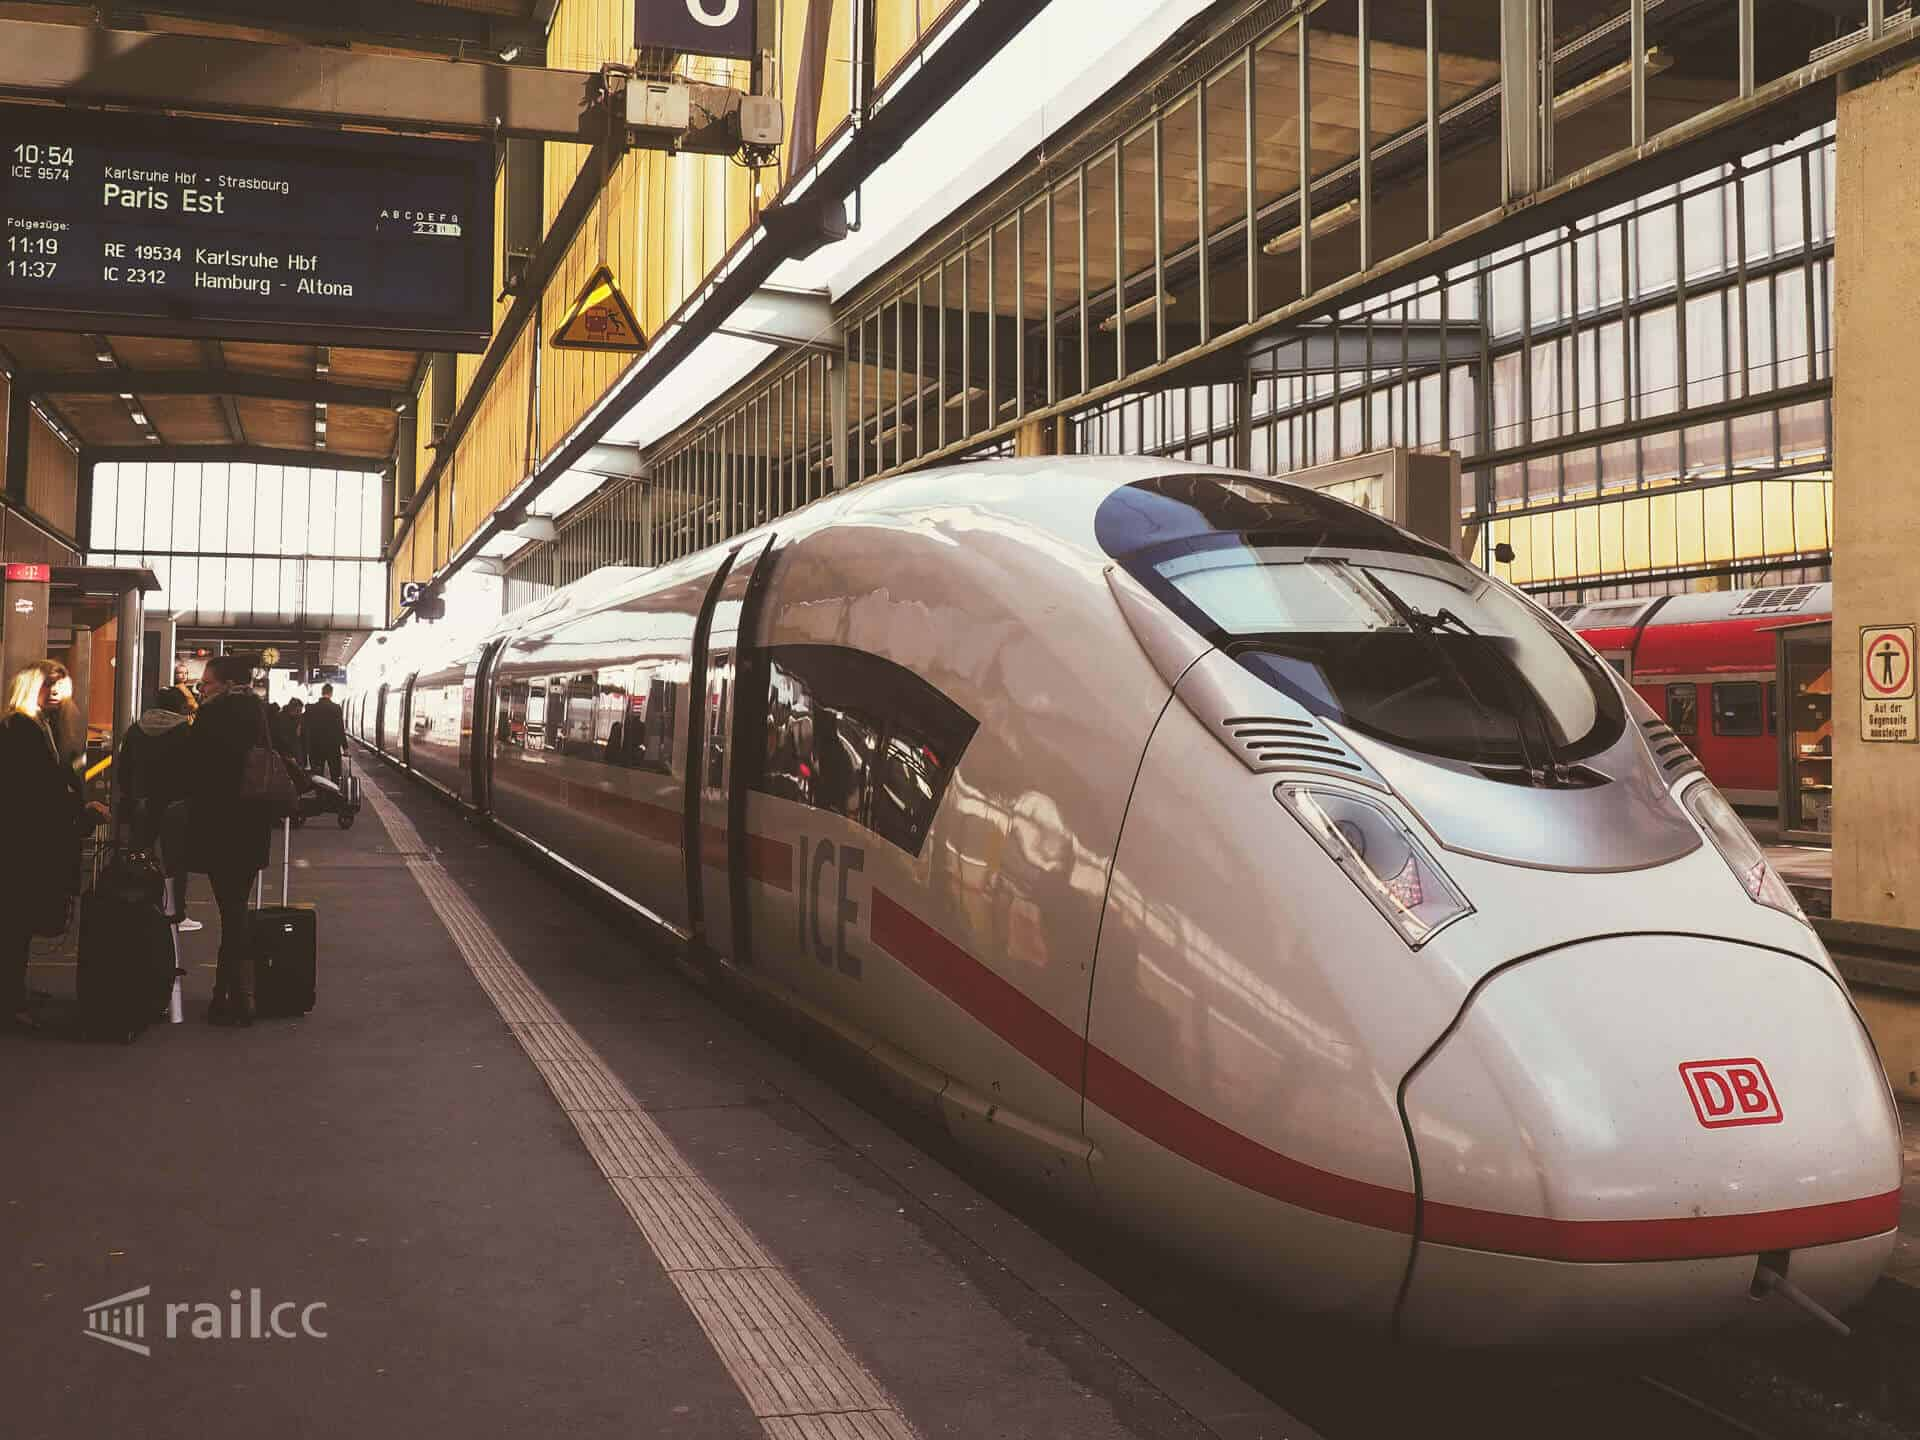 Paris Train Stuttgart To Paris By Ice High Speed Train And Saver Fare Tickets